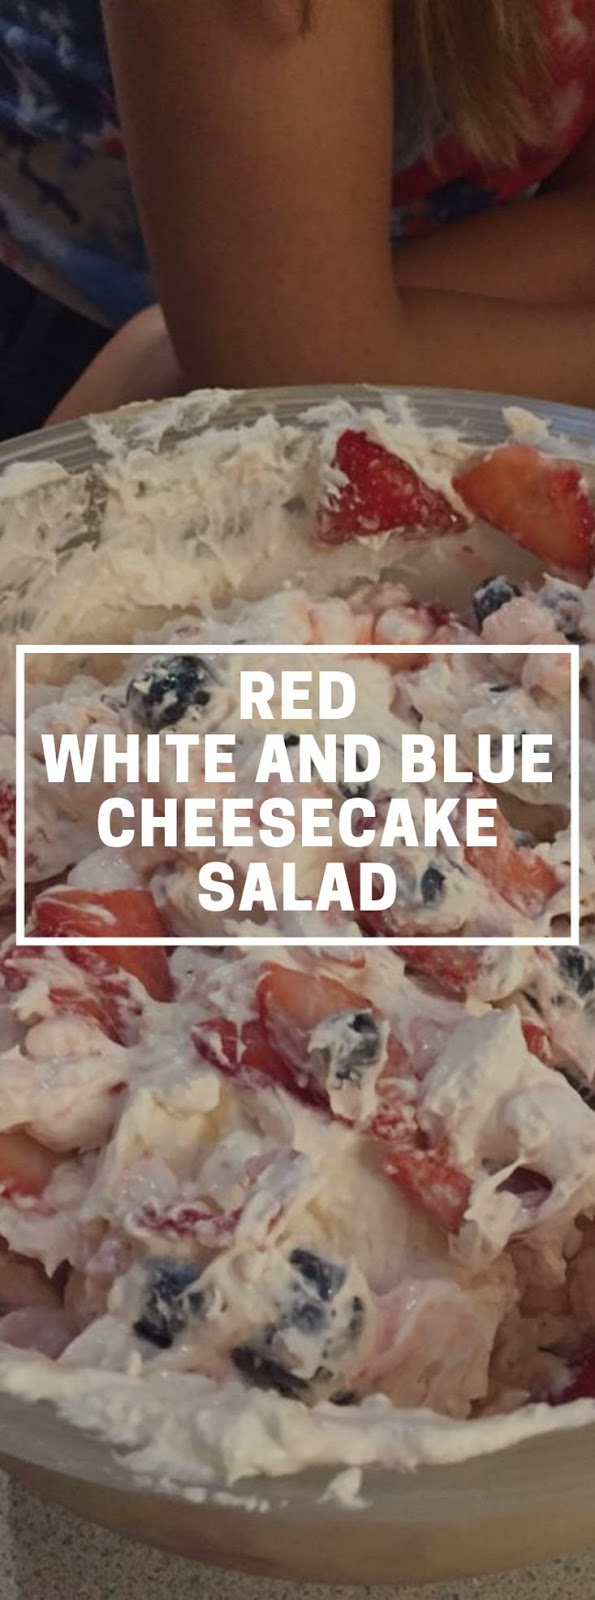 Red White and Blue Cheesecake Salad